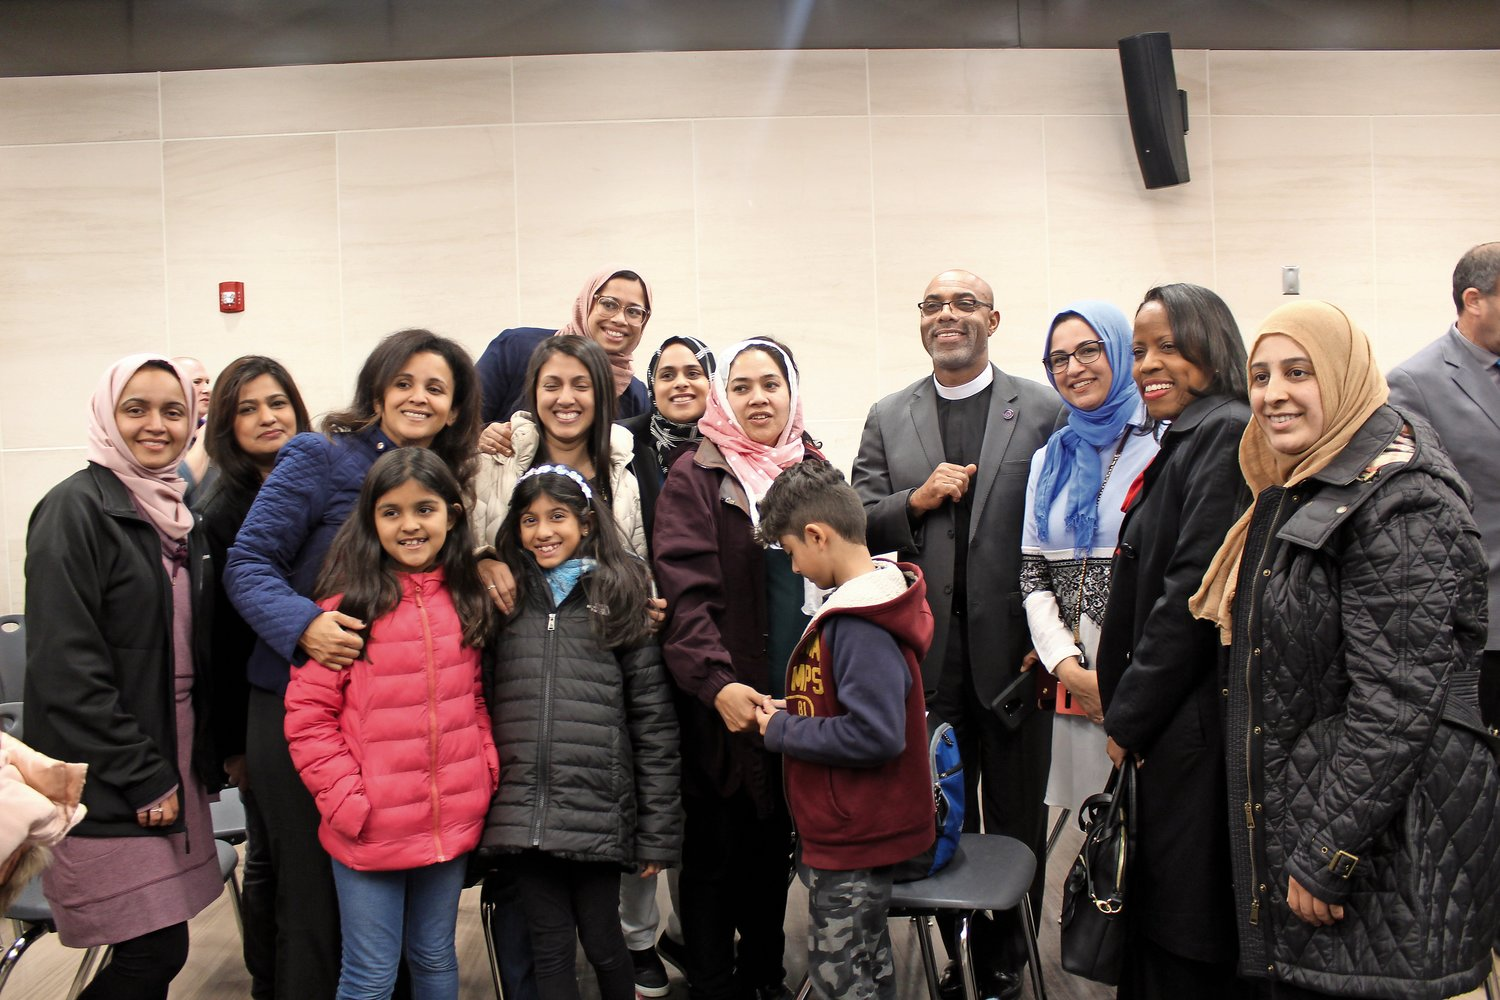 Muslim parents and students petitioned the Sewanhaka Central High School District Board of Education to include Eid al-Adha and Eid al-Fitr on school calendars in 2019. They were supported by the Rev. Danilo Archbold, pastor of New Jerusalem Pentecostal Church in Elmont, fourth from right.